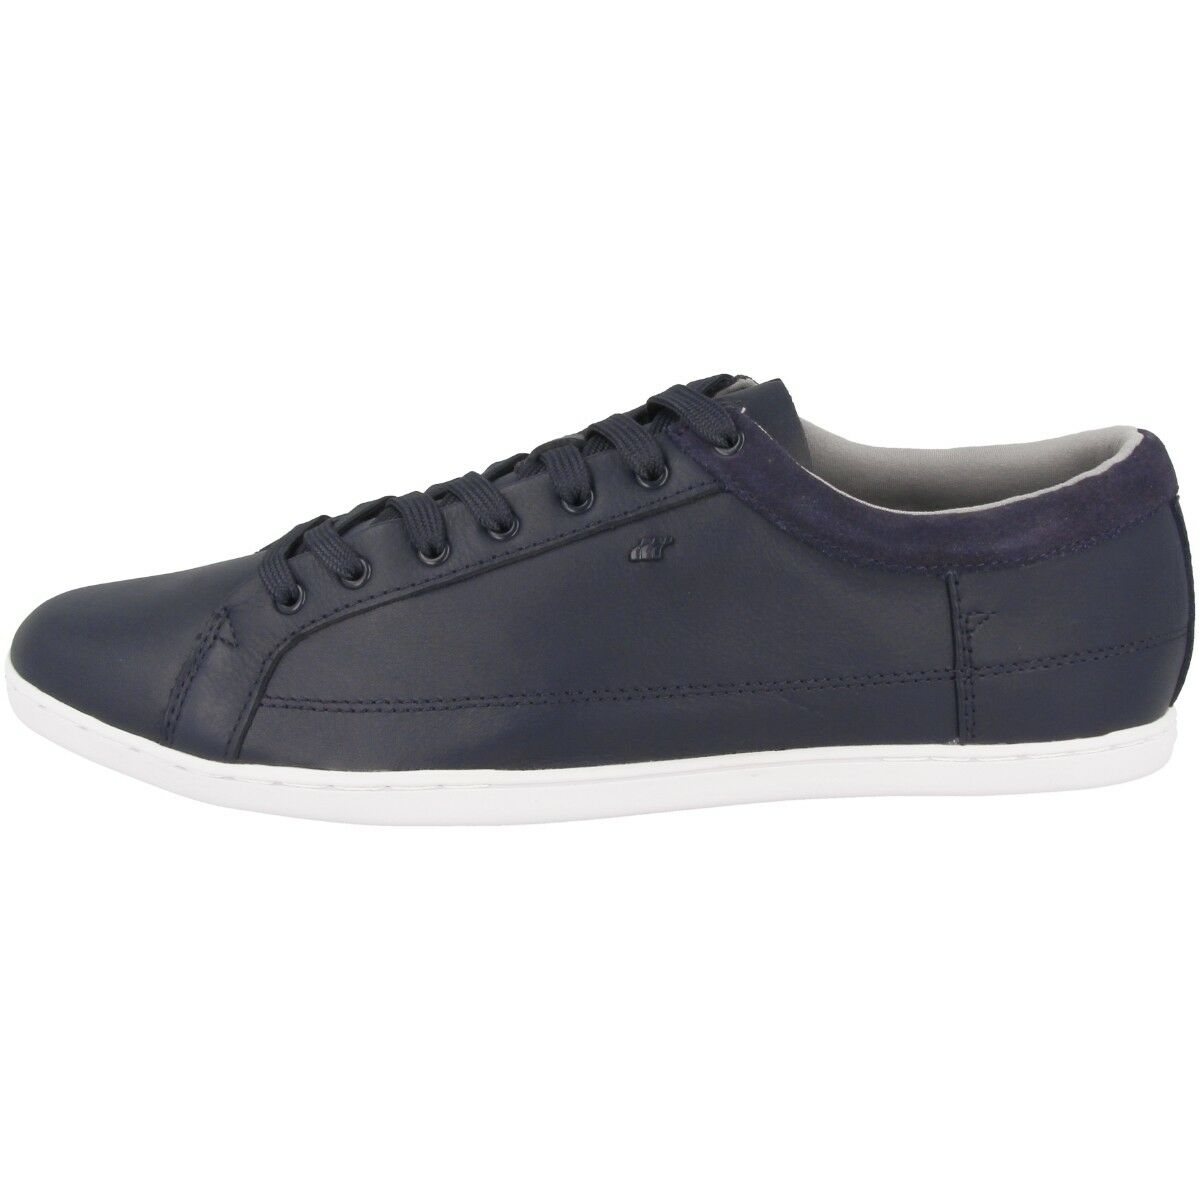 Boxfresh Losium SH Leather Schuhe Men navy Herren Leder Sneaker navy Men Sparko E14946 ad2579